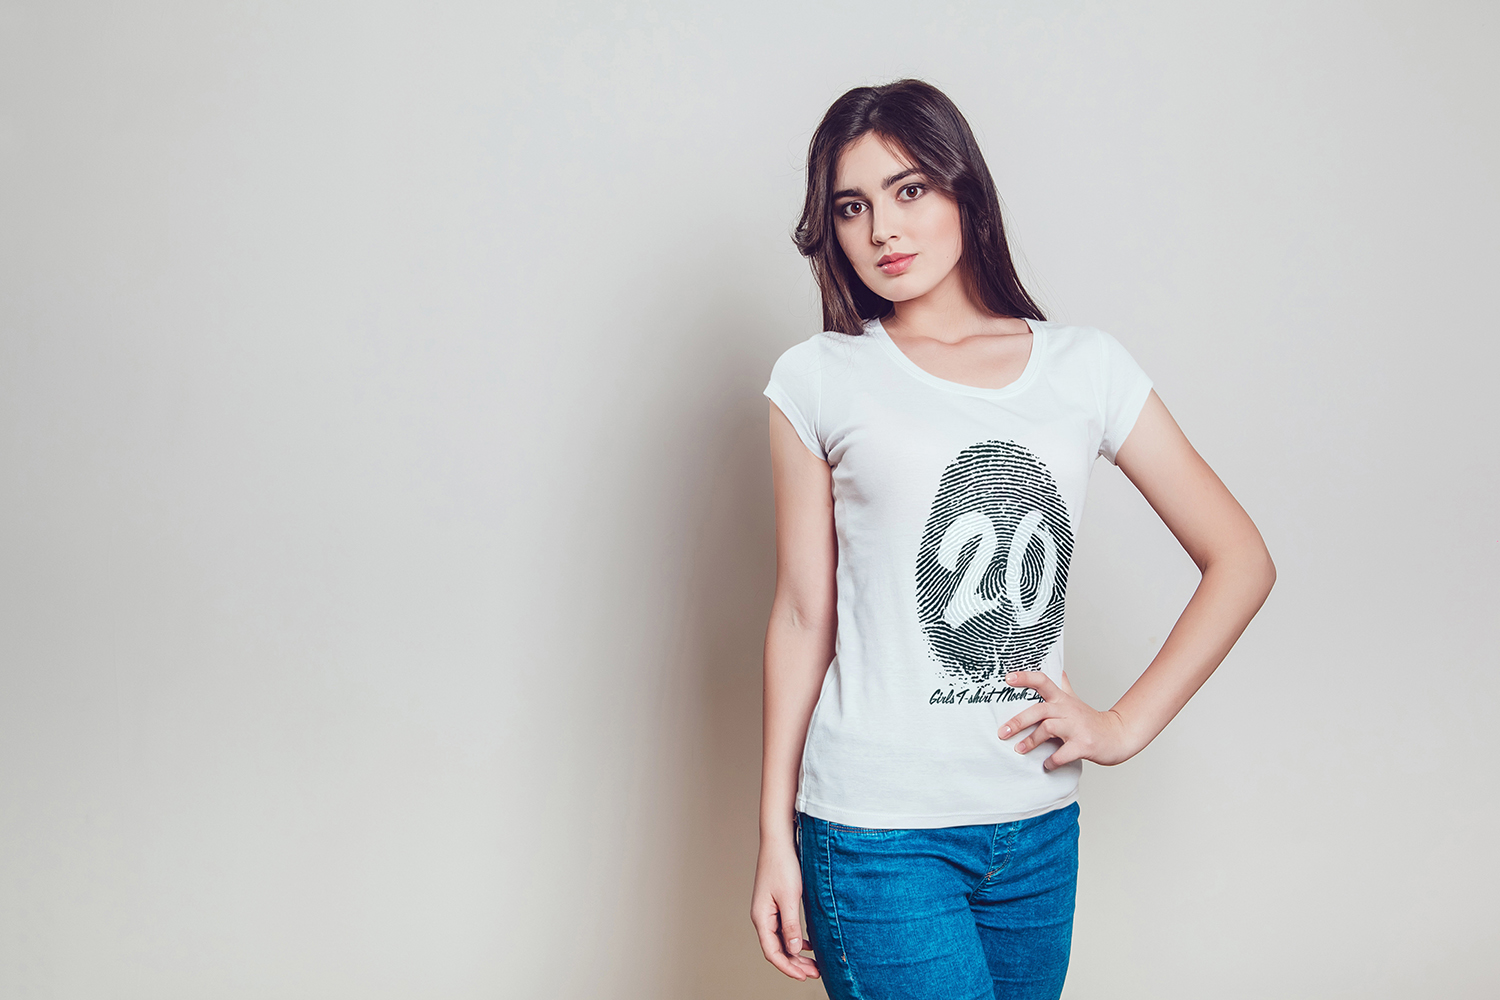 20 Top Girls T-Shirt Mock-Up example image 13